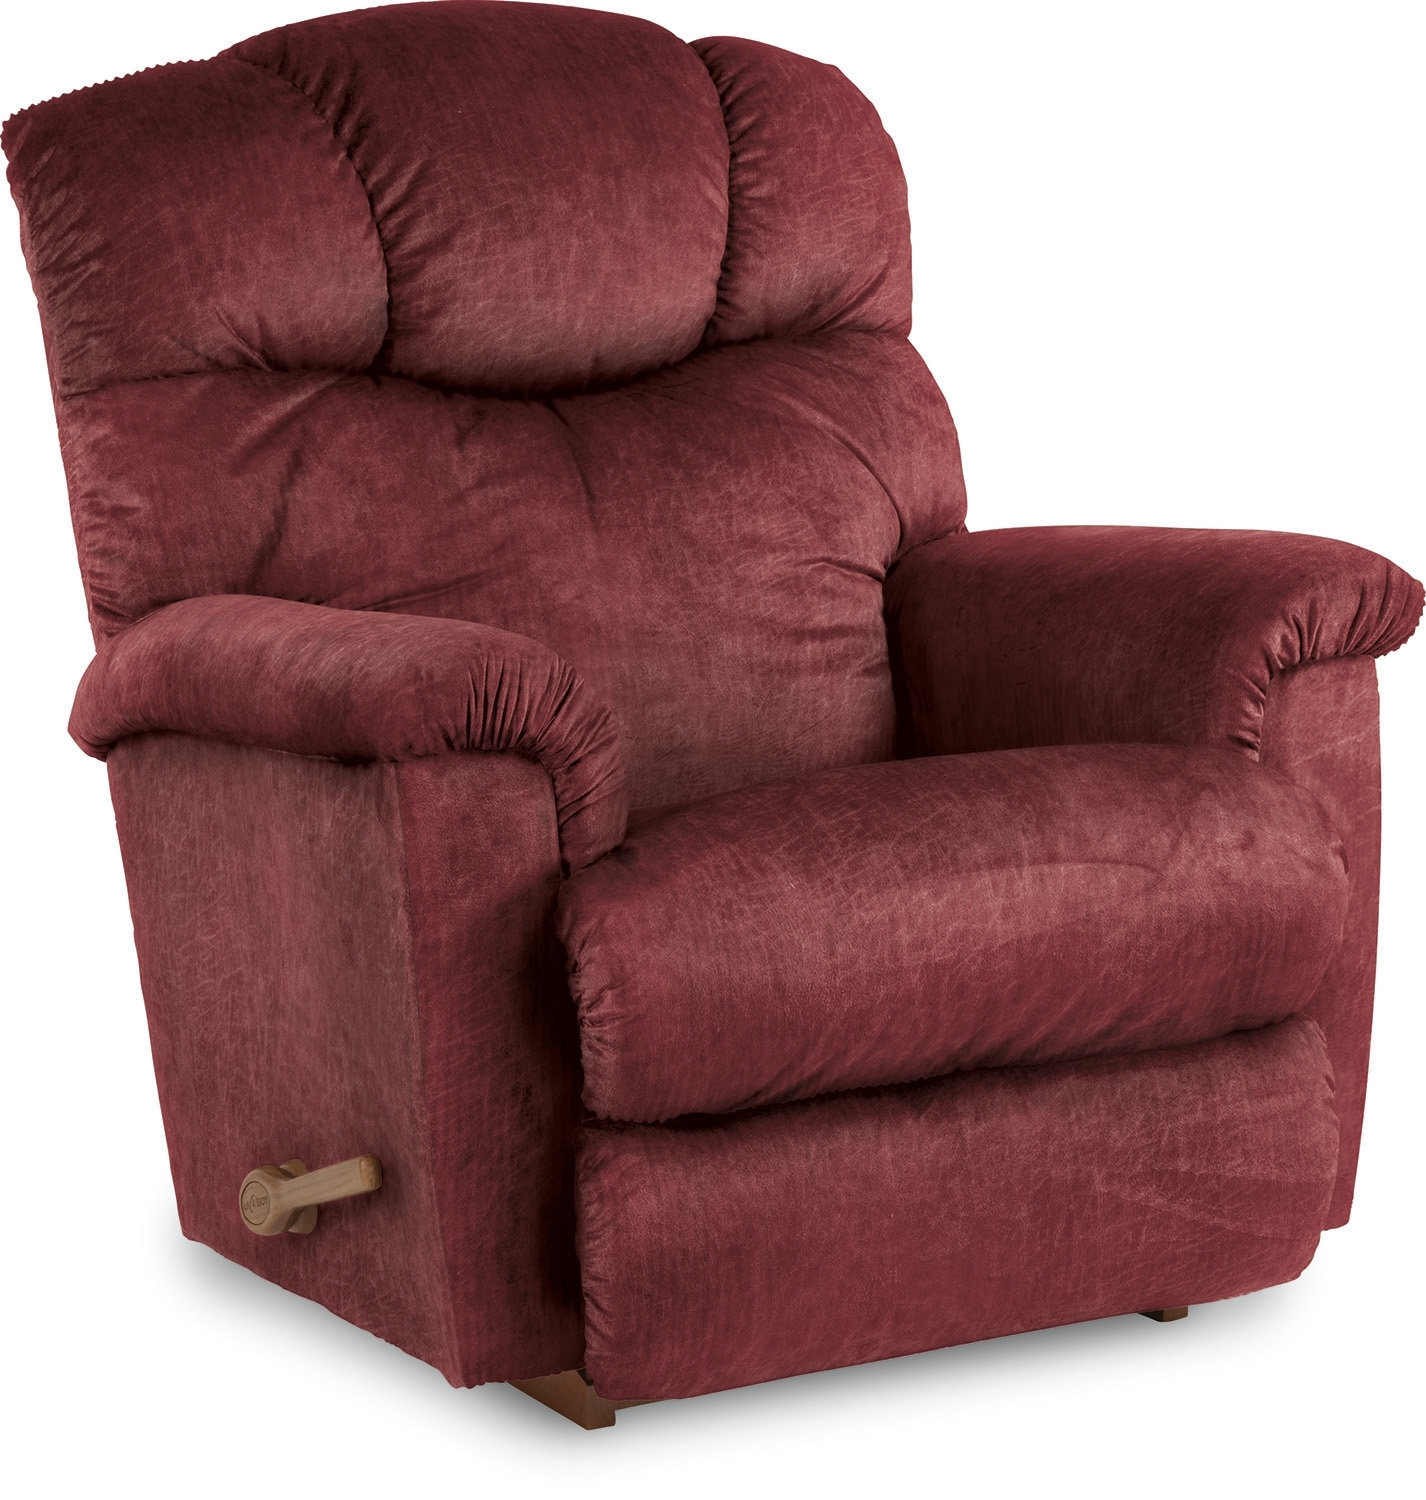 La-Z-Boy Lancer Recliner & Reviews | Wayfair with regard to Marcus Chocolate 6 Piece Sectionals With Power Headrest and Usb (Image 8 of 30)